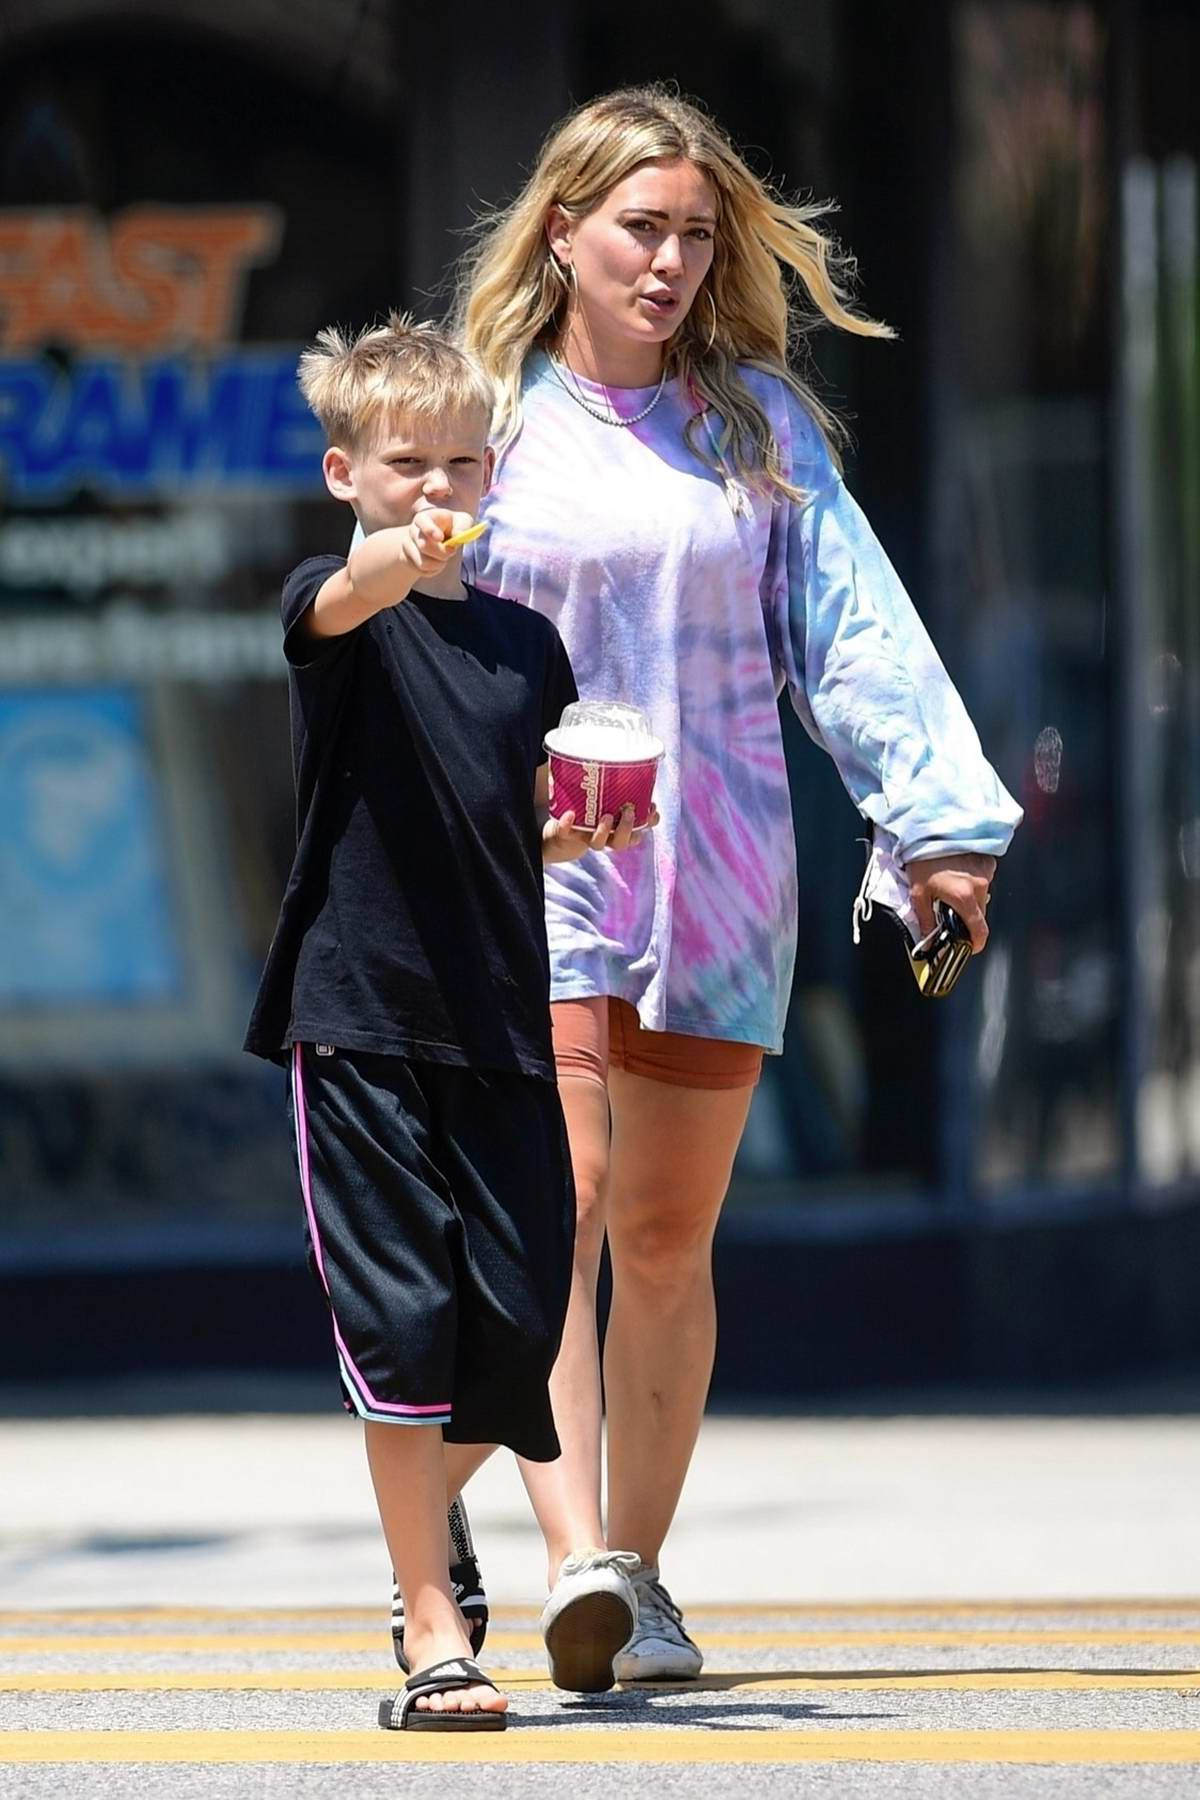 Hilary Duff takes her son out for a cold treat at Menchie's Frozen Yogurt during a play date with friends in Los Angeles